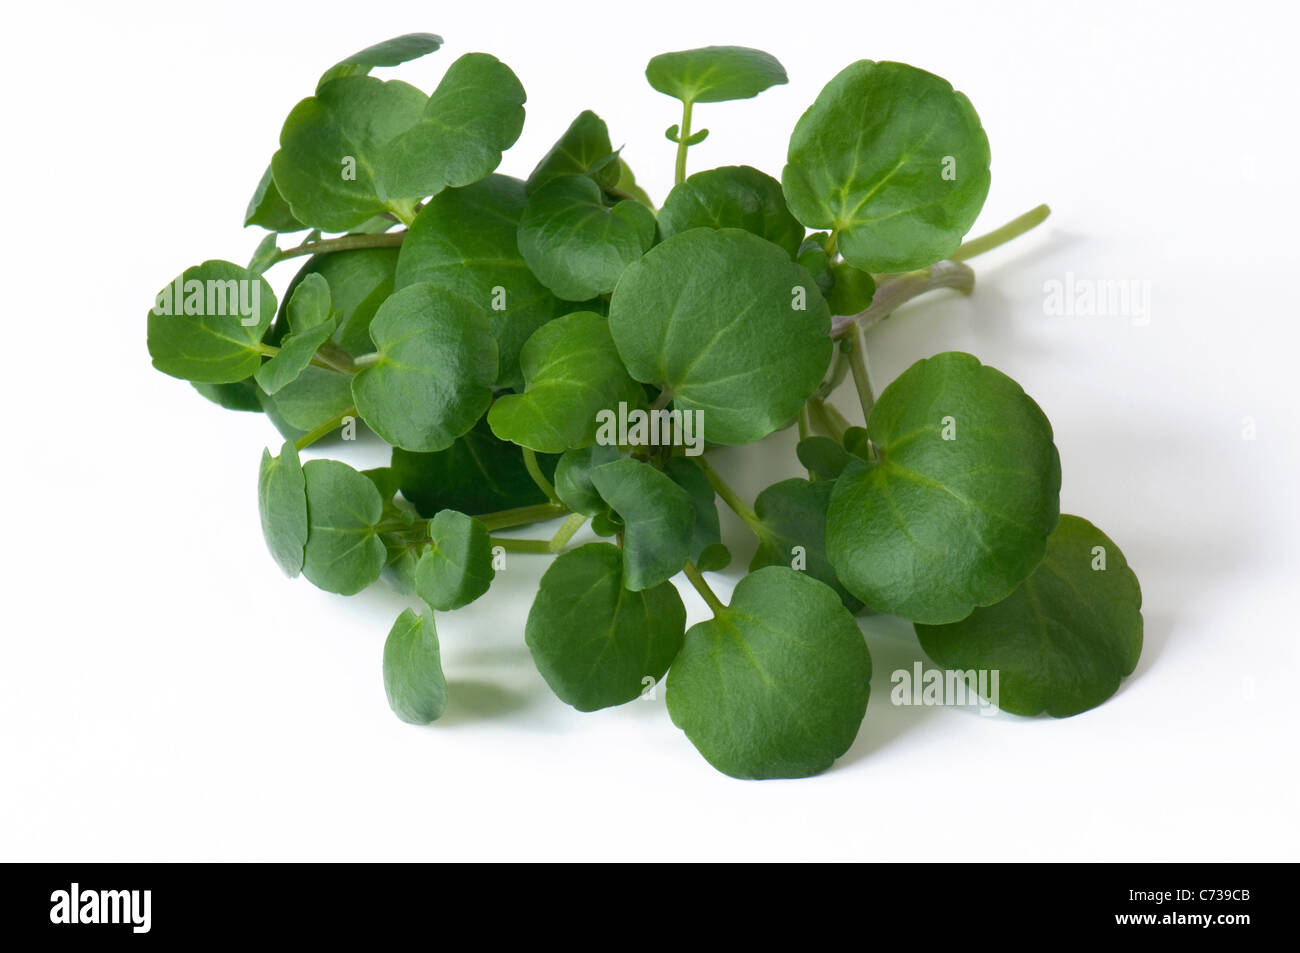 Watercress (Nasturtium officinale), leaves. Studio shot against a white background. - Stock Image